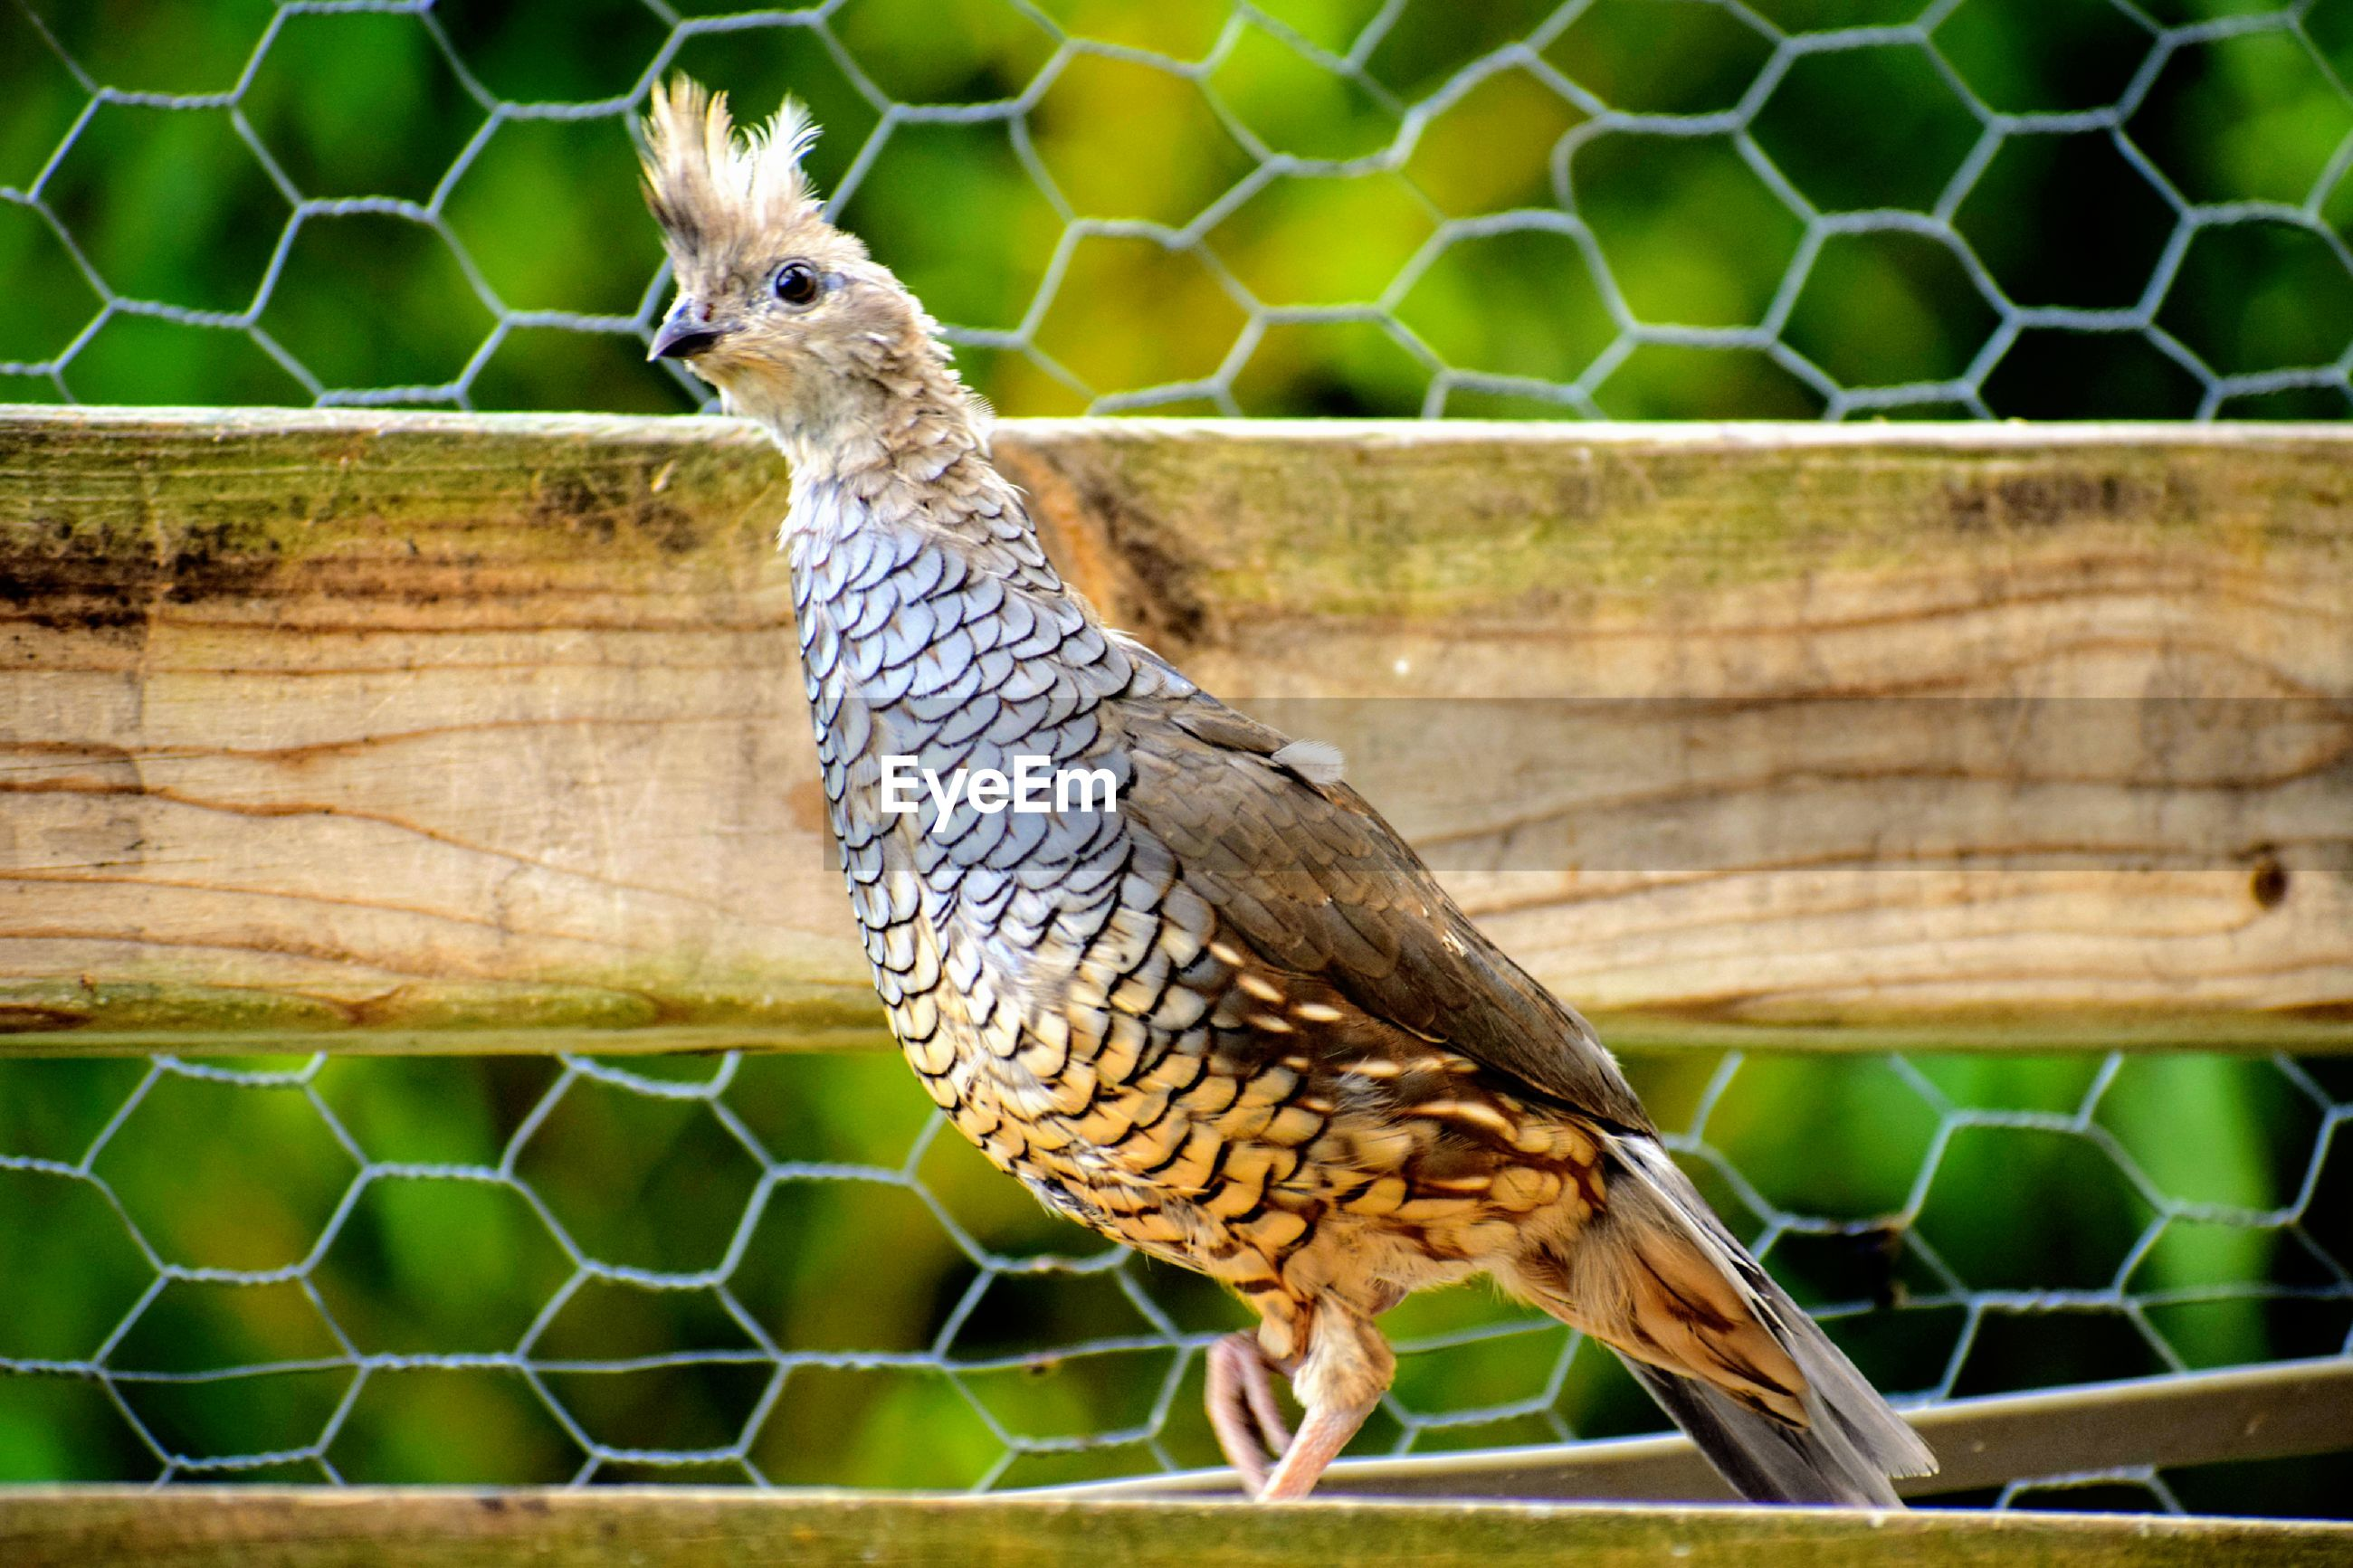 CLOSE-UP OF BIRD PERCHING ON WOOD AGAINST FENCE